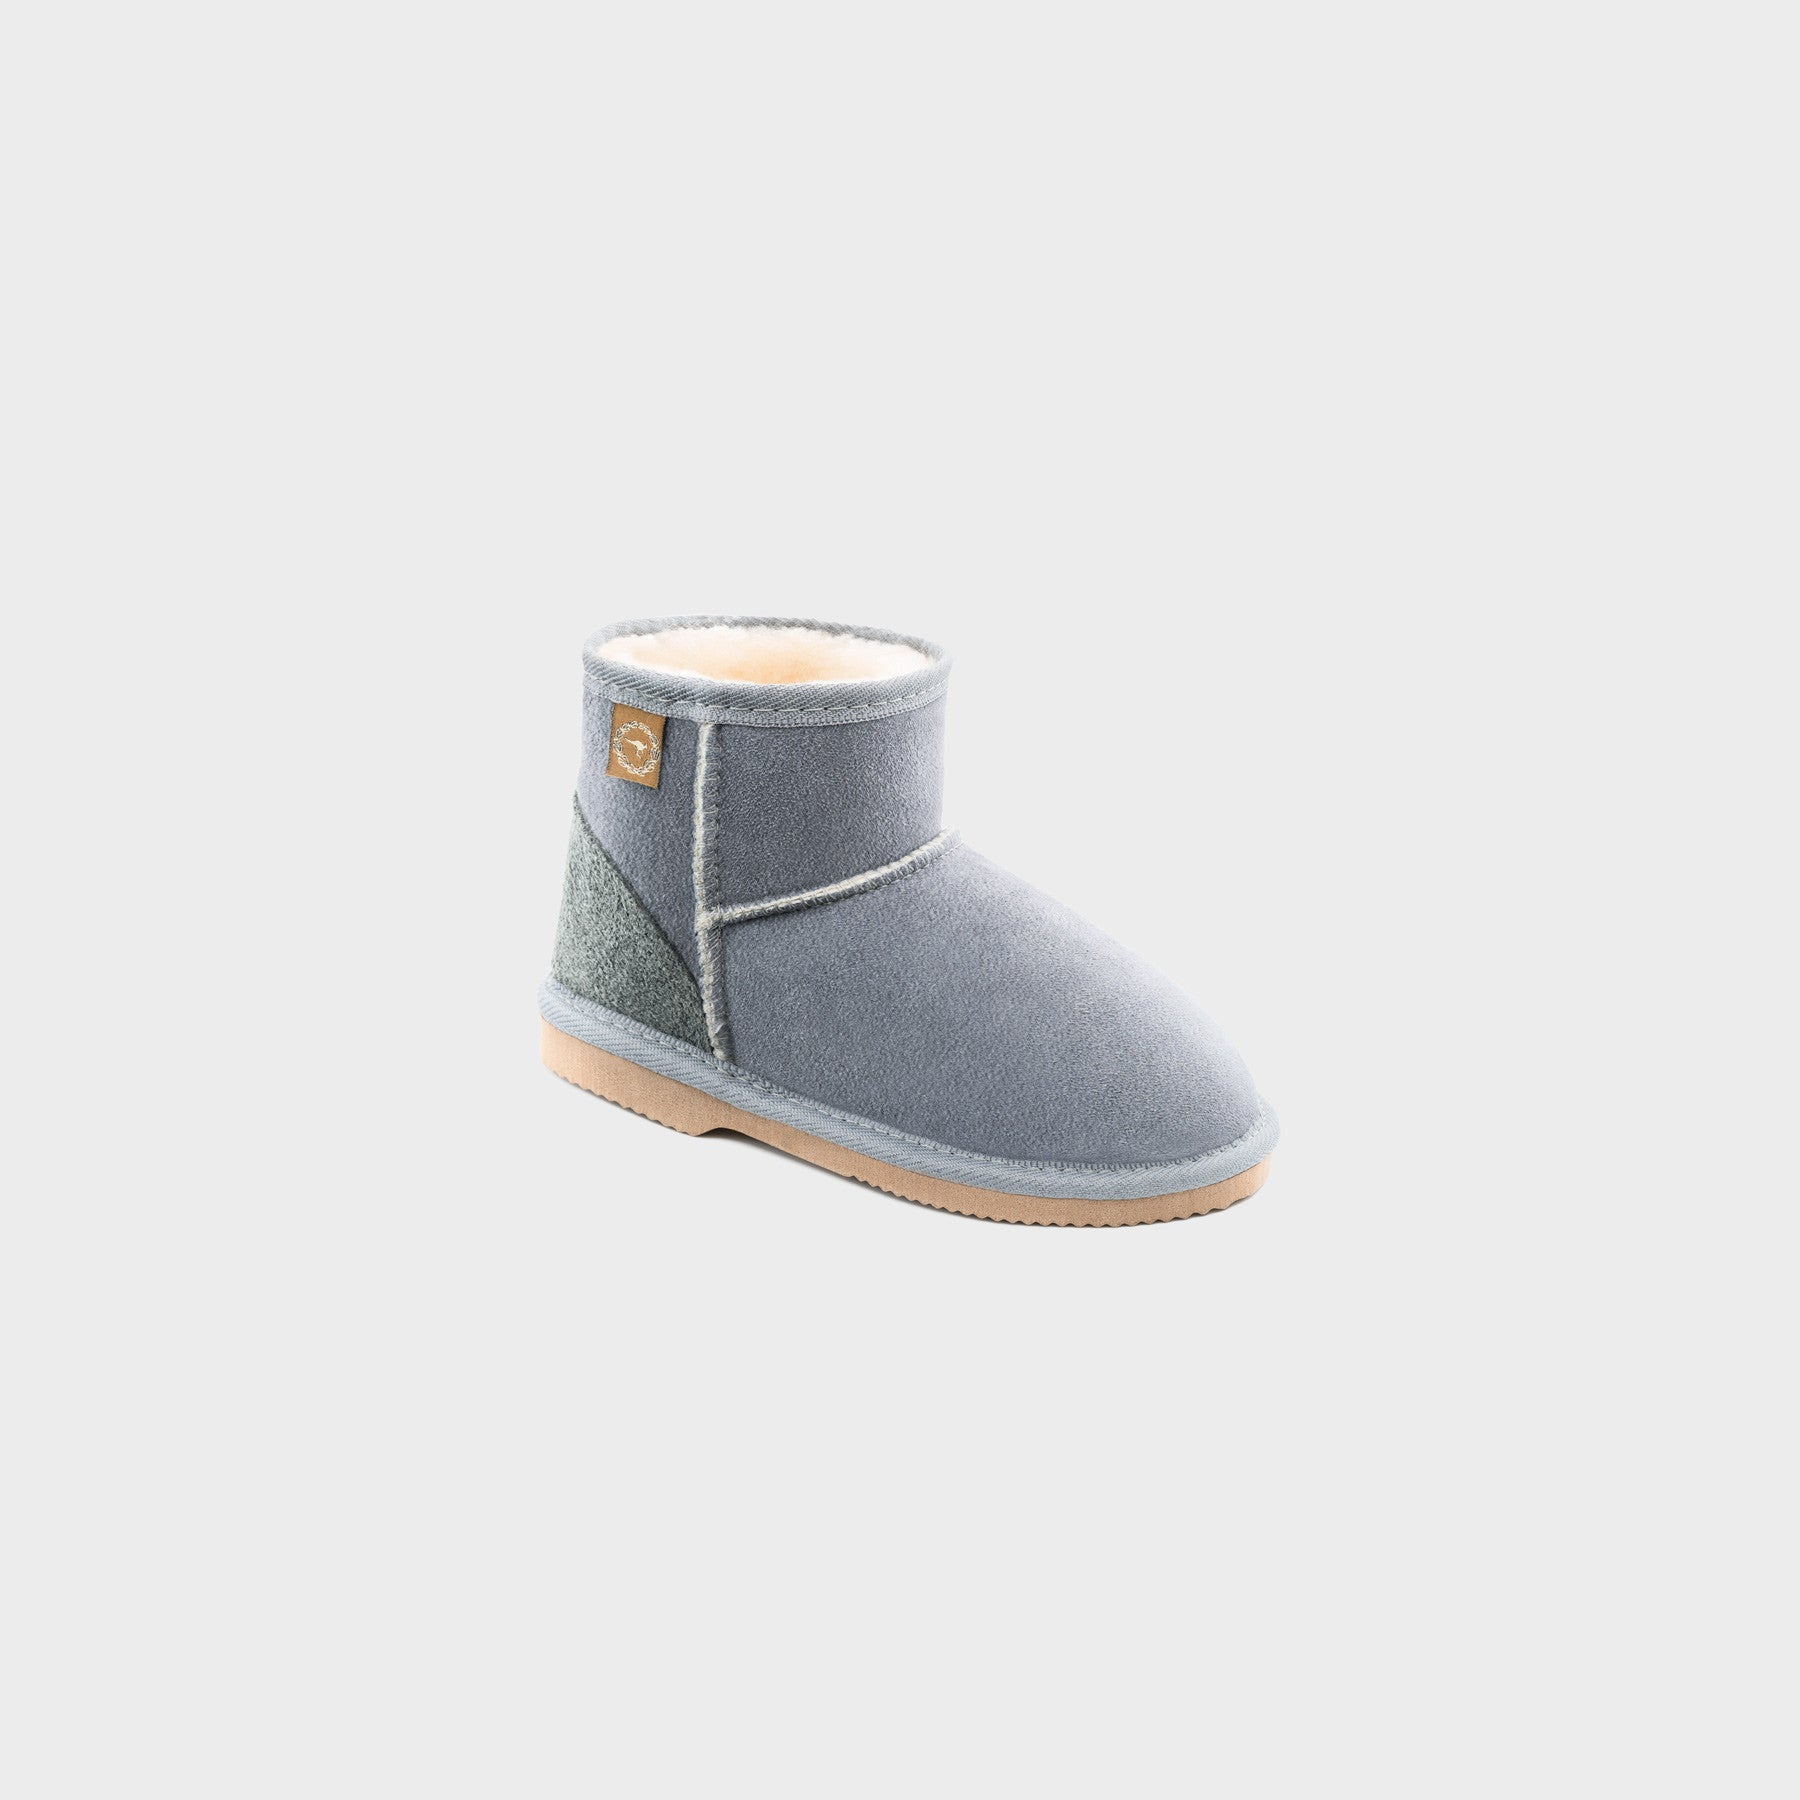 Ugg Australia Mini Ugg Boot - Grey